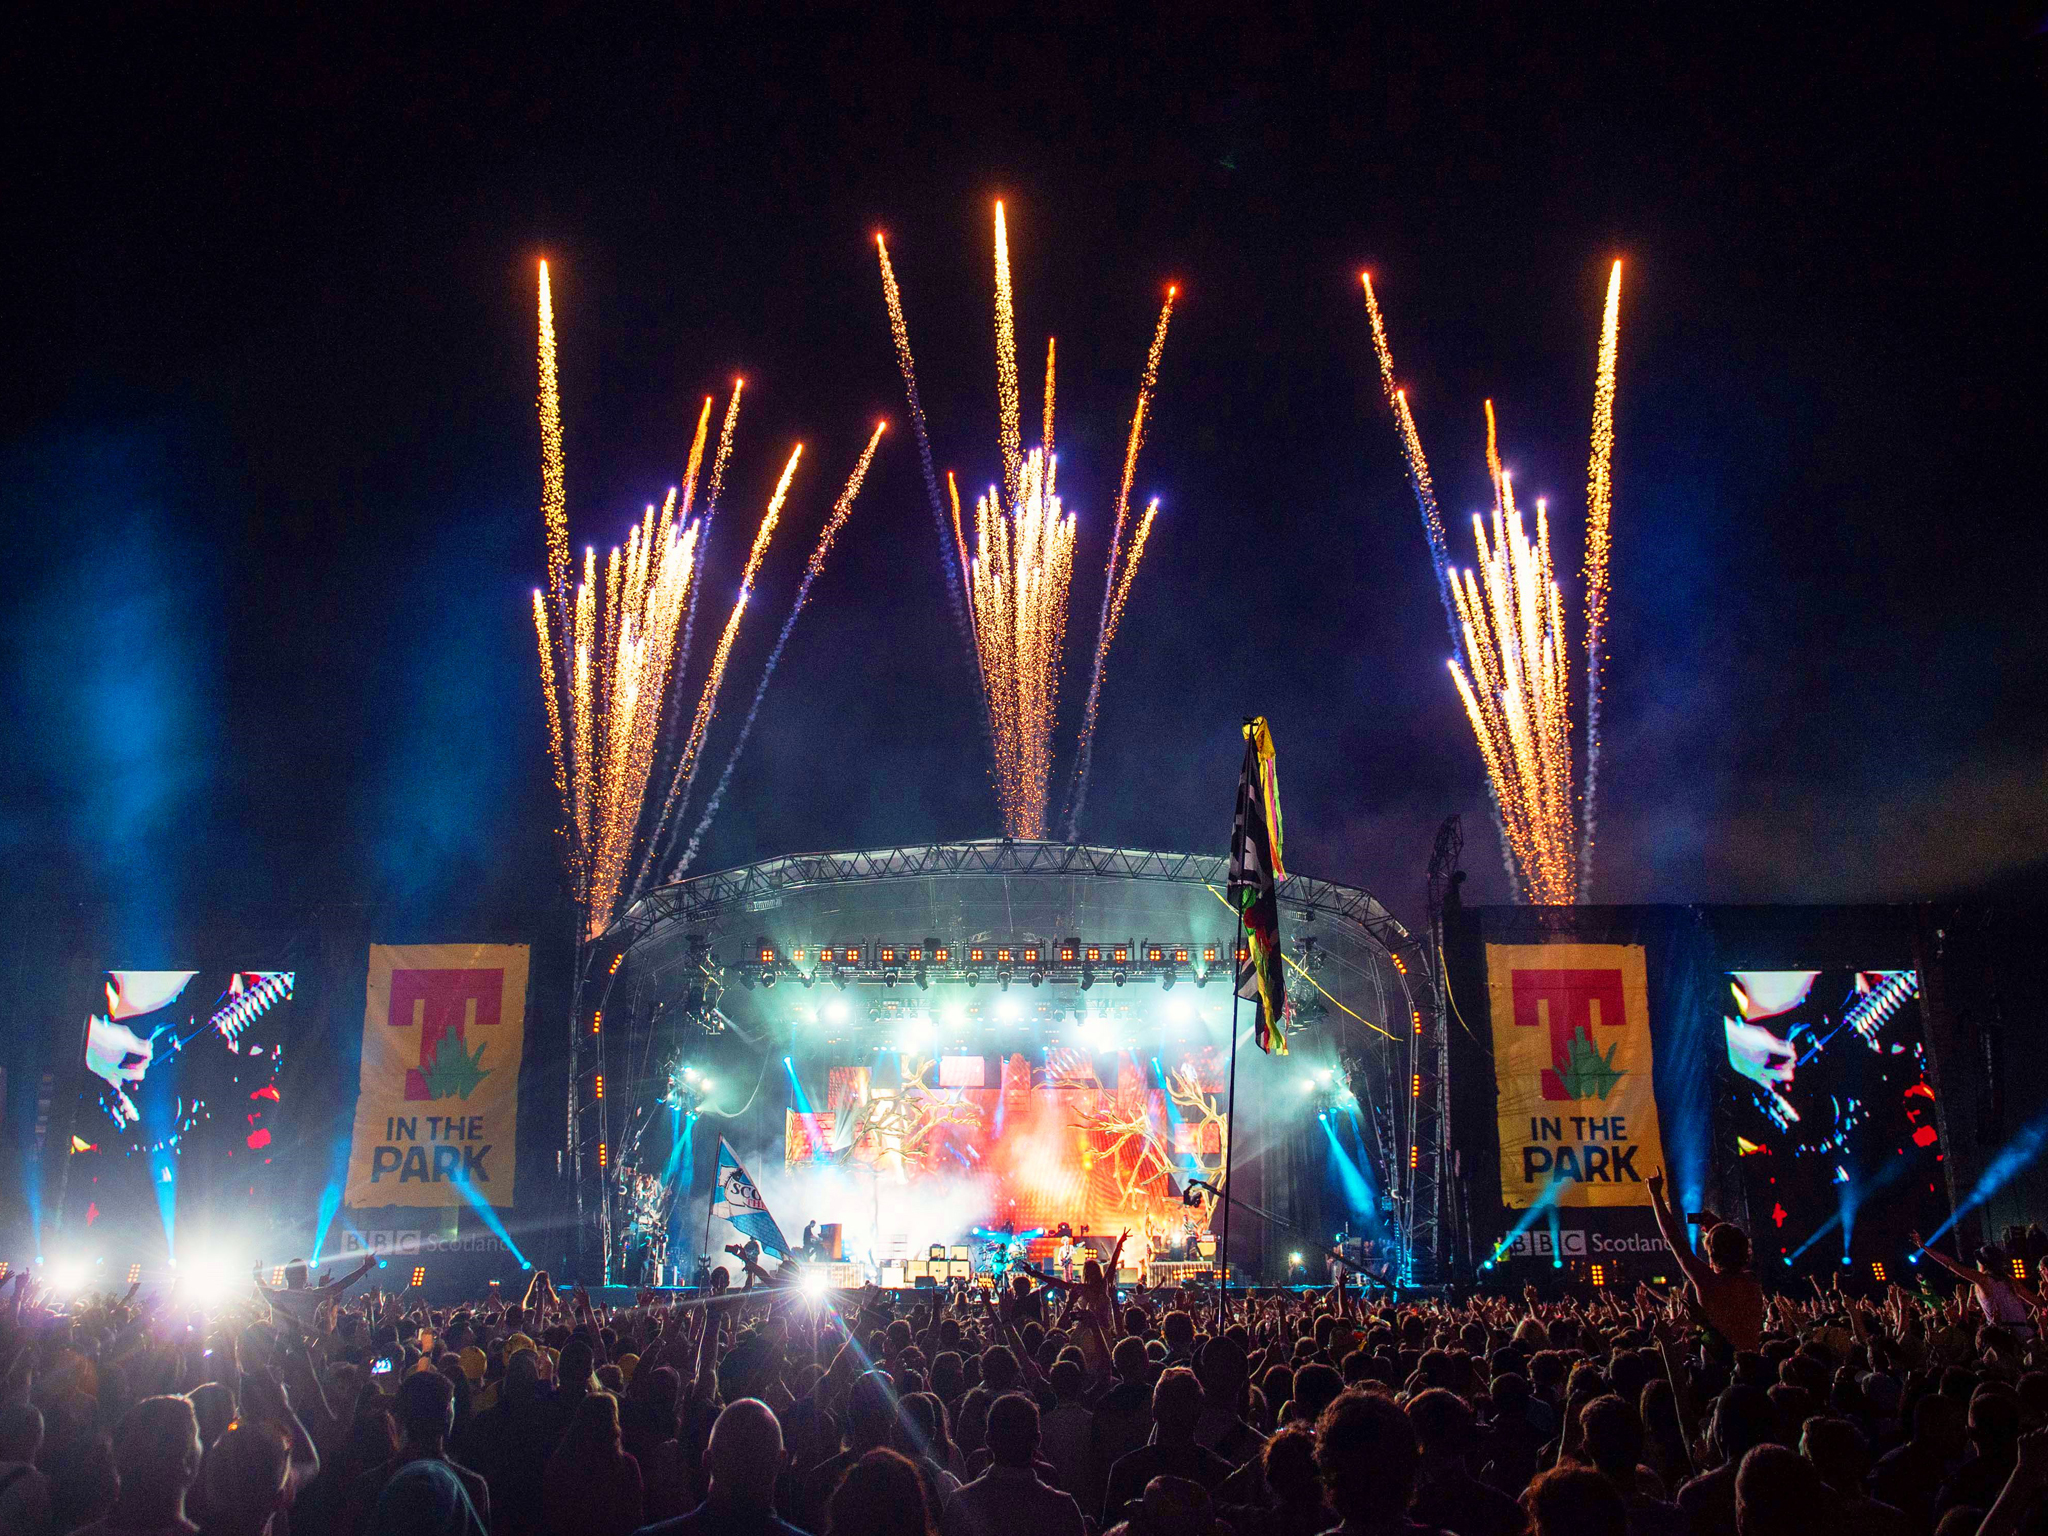 Win one of two pairs of VIP weekend camping tickets to T in the Park 2015